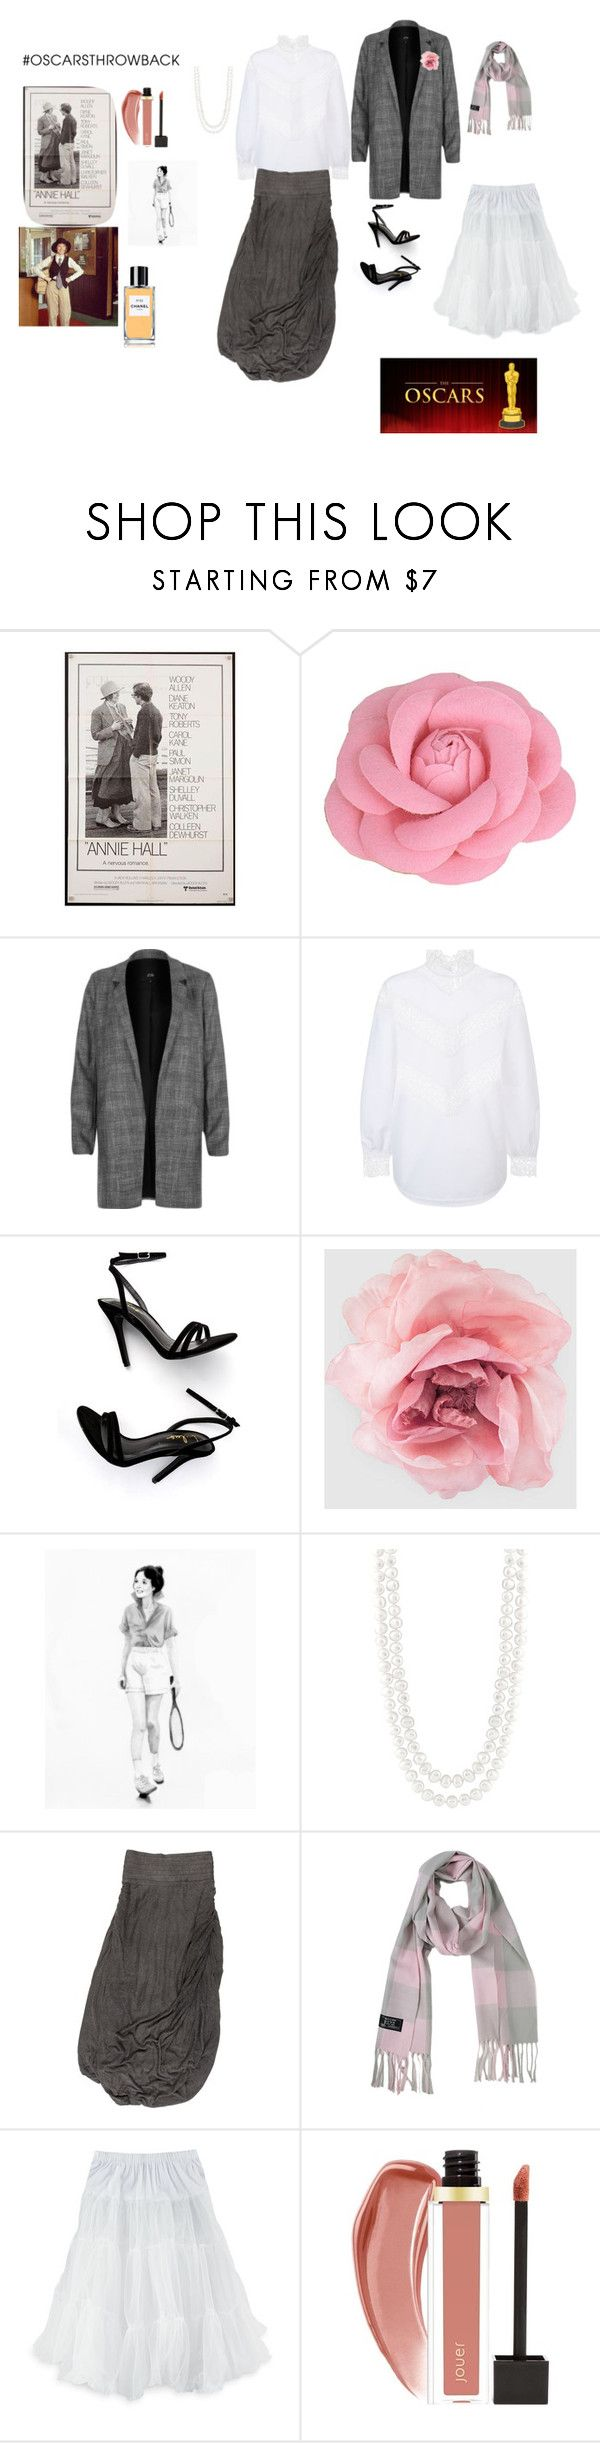 """""""Diane Keaton - Best Actress 1978 Annie Hall"""" by sweetpeachbellini ❤ liked on Polyvore featuring River Island, Sandro, LULUS, Gucci, Masako, Yigal AzrouÃ«l, Le Nom, Chanel, redcarpetstyle and OscarsThrowback"""